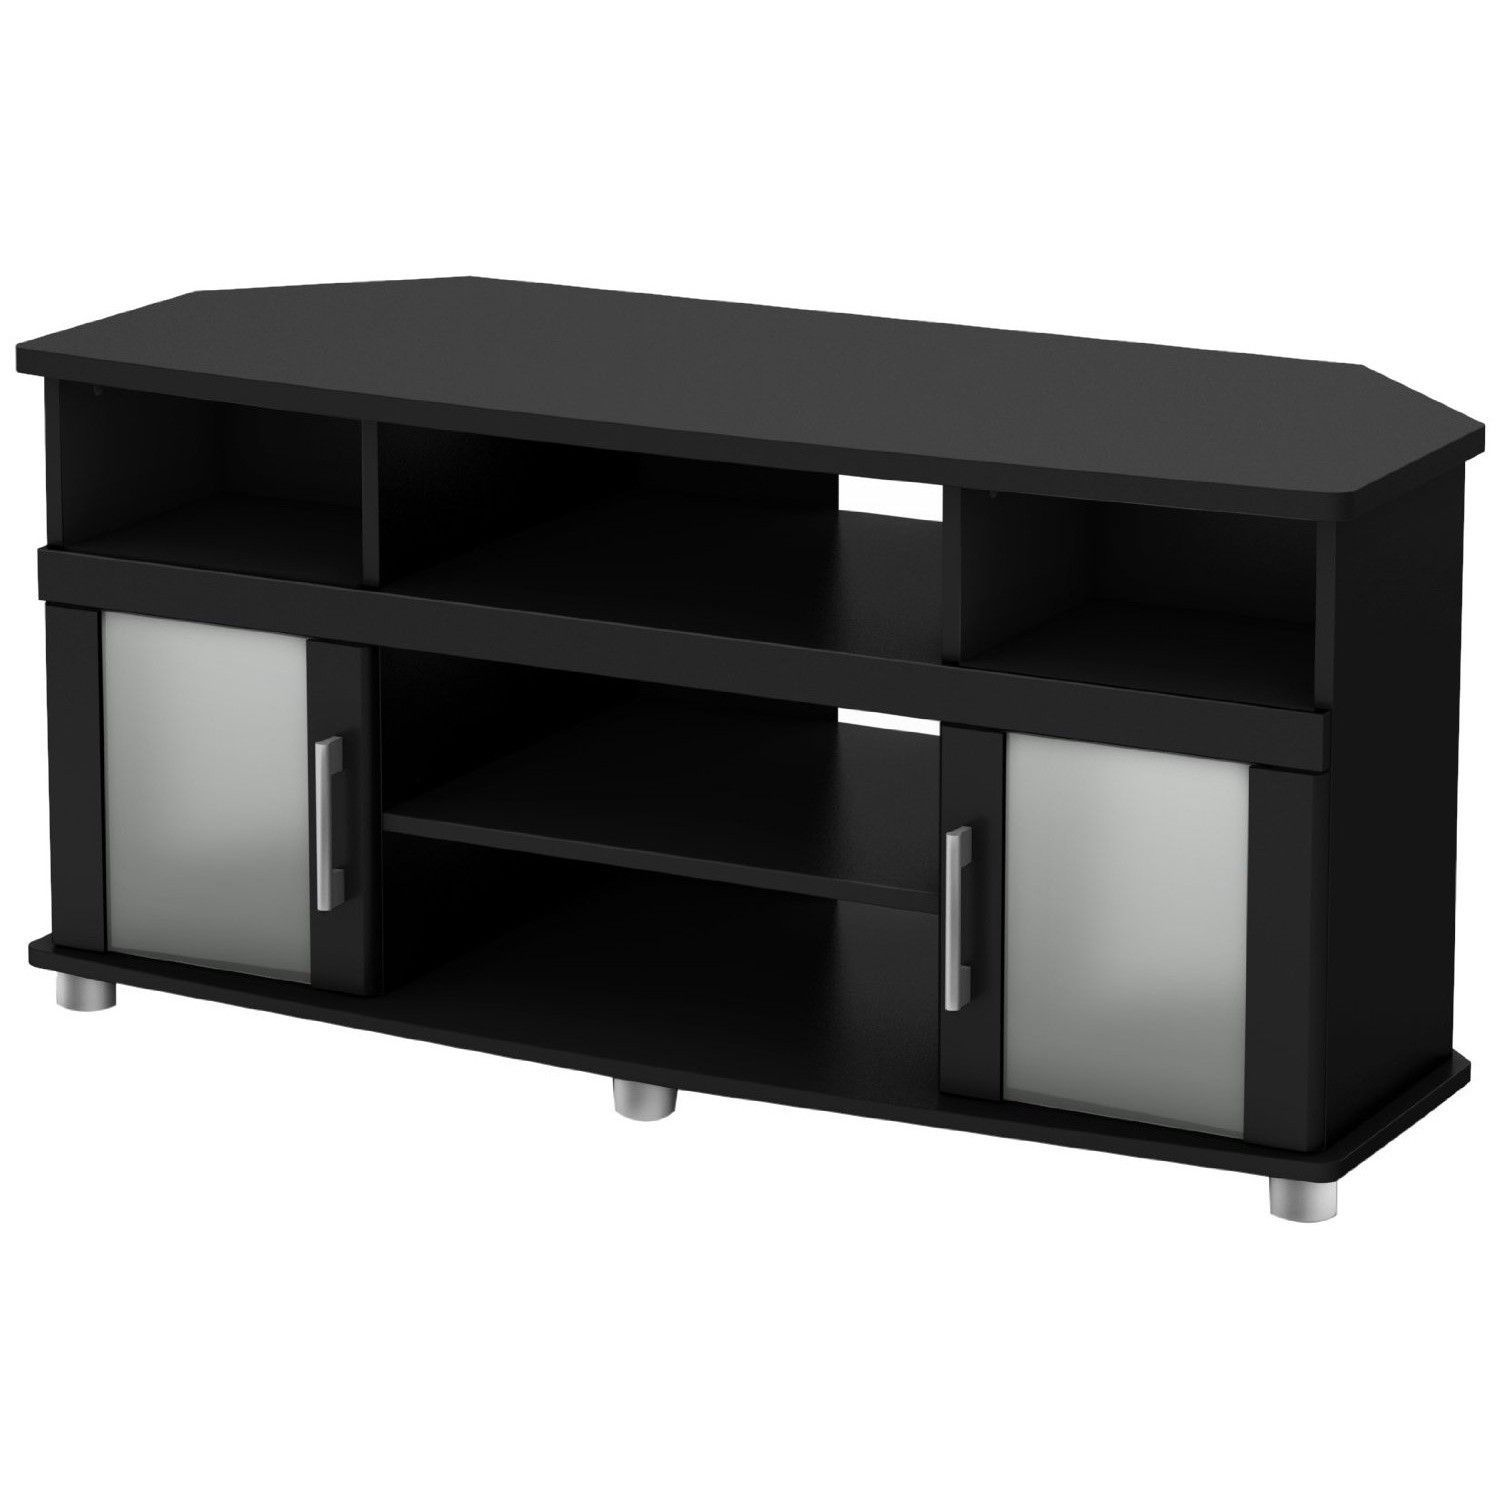 Black Corner Tv Stand With Frosted Glass Doors Tv Stands